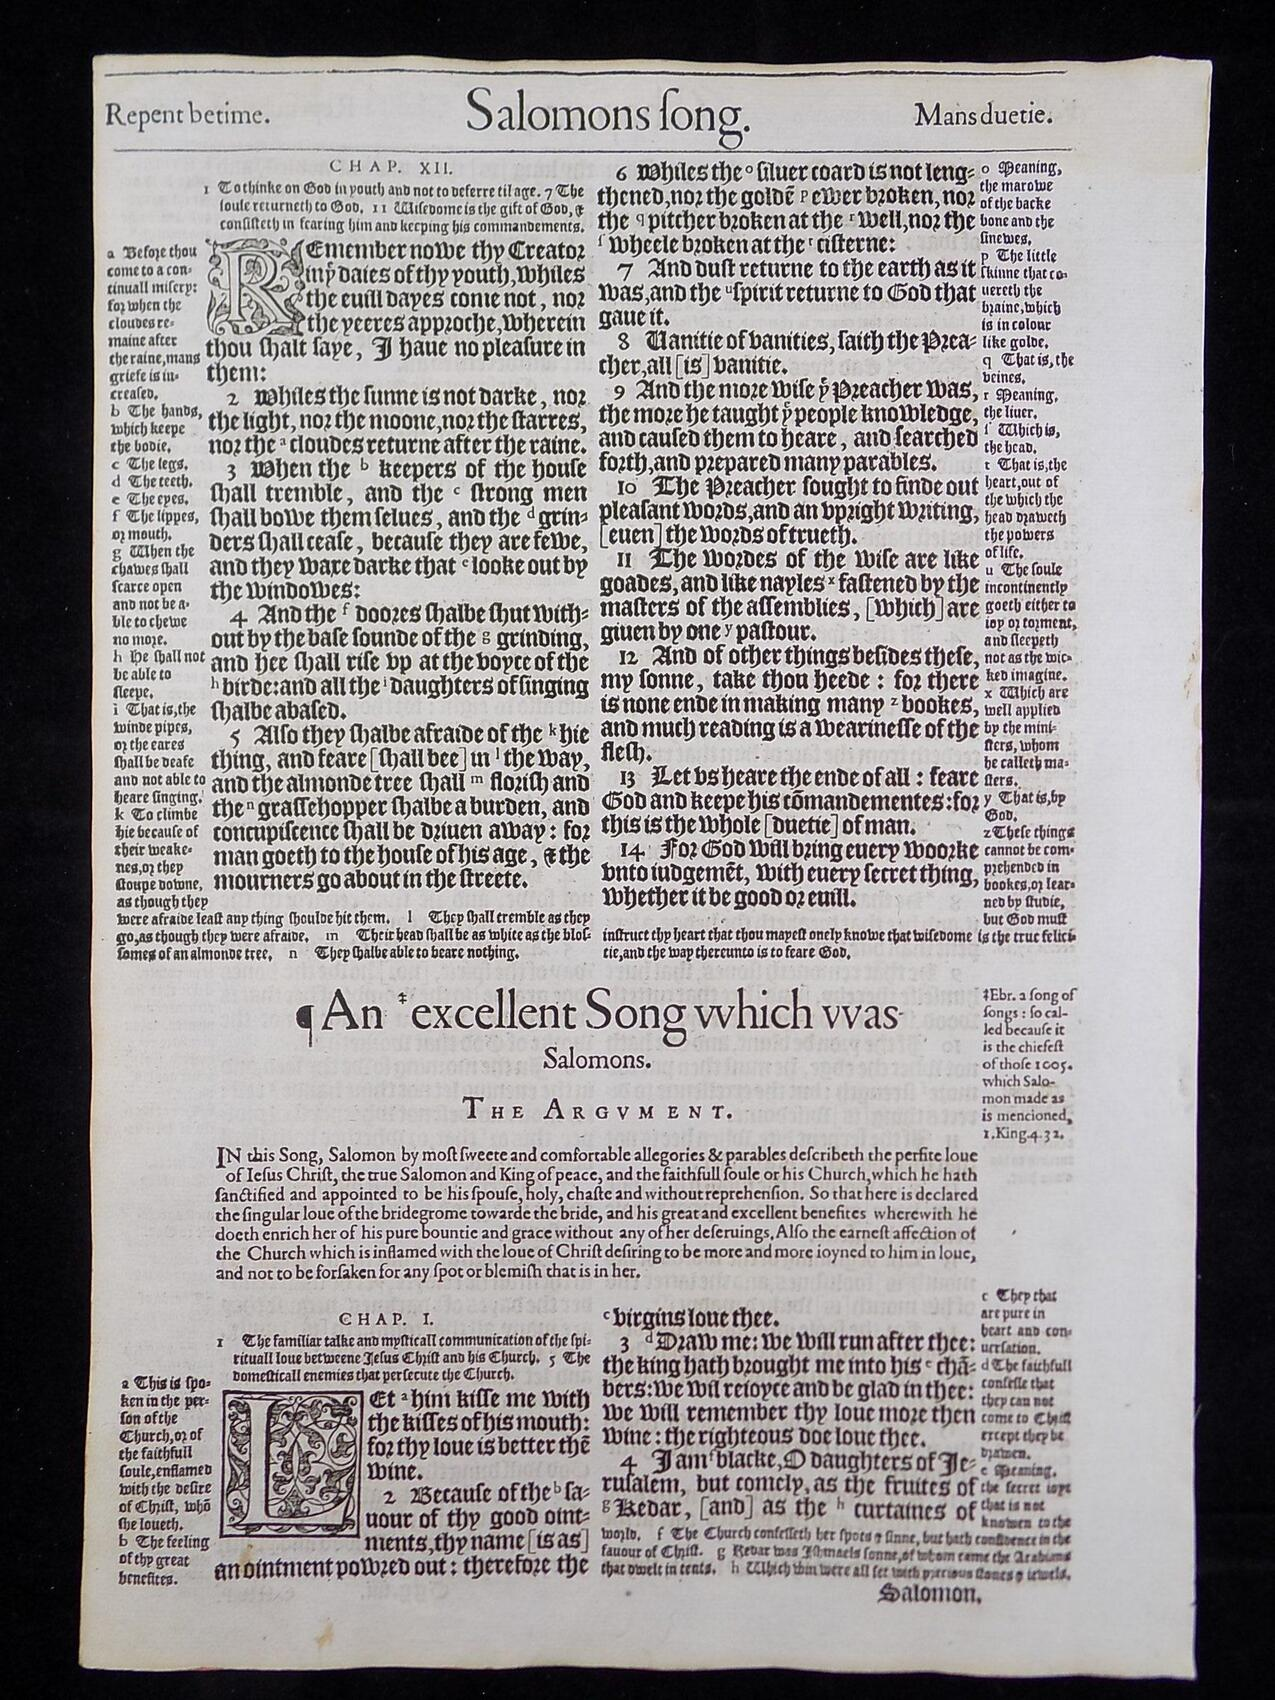 1583 NOBLEST GENEVA BIBLE LEAVES BOOK OF THE SONG OF SOLOMON